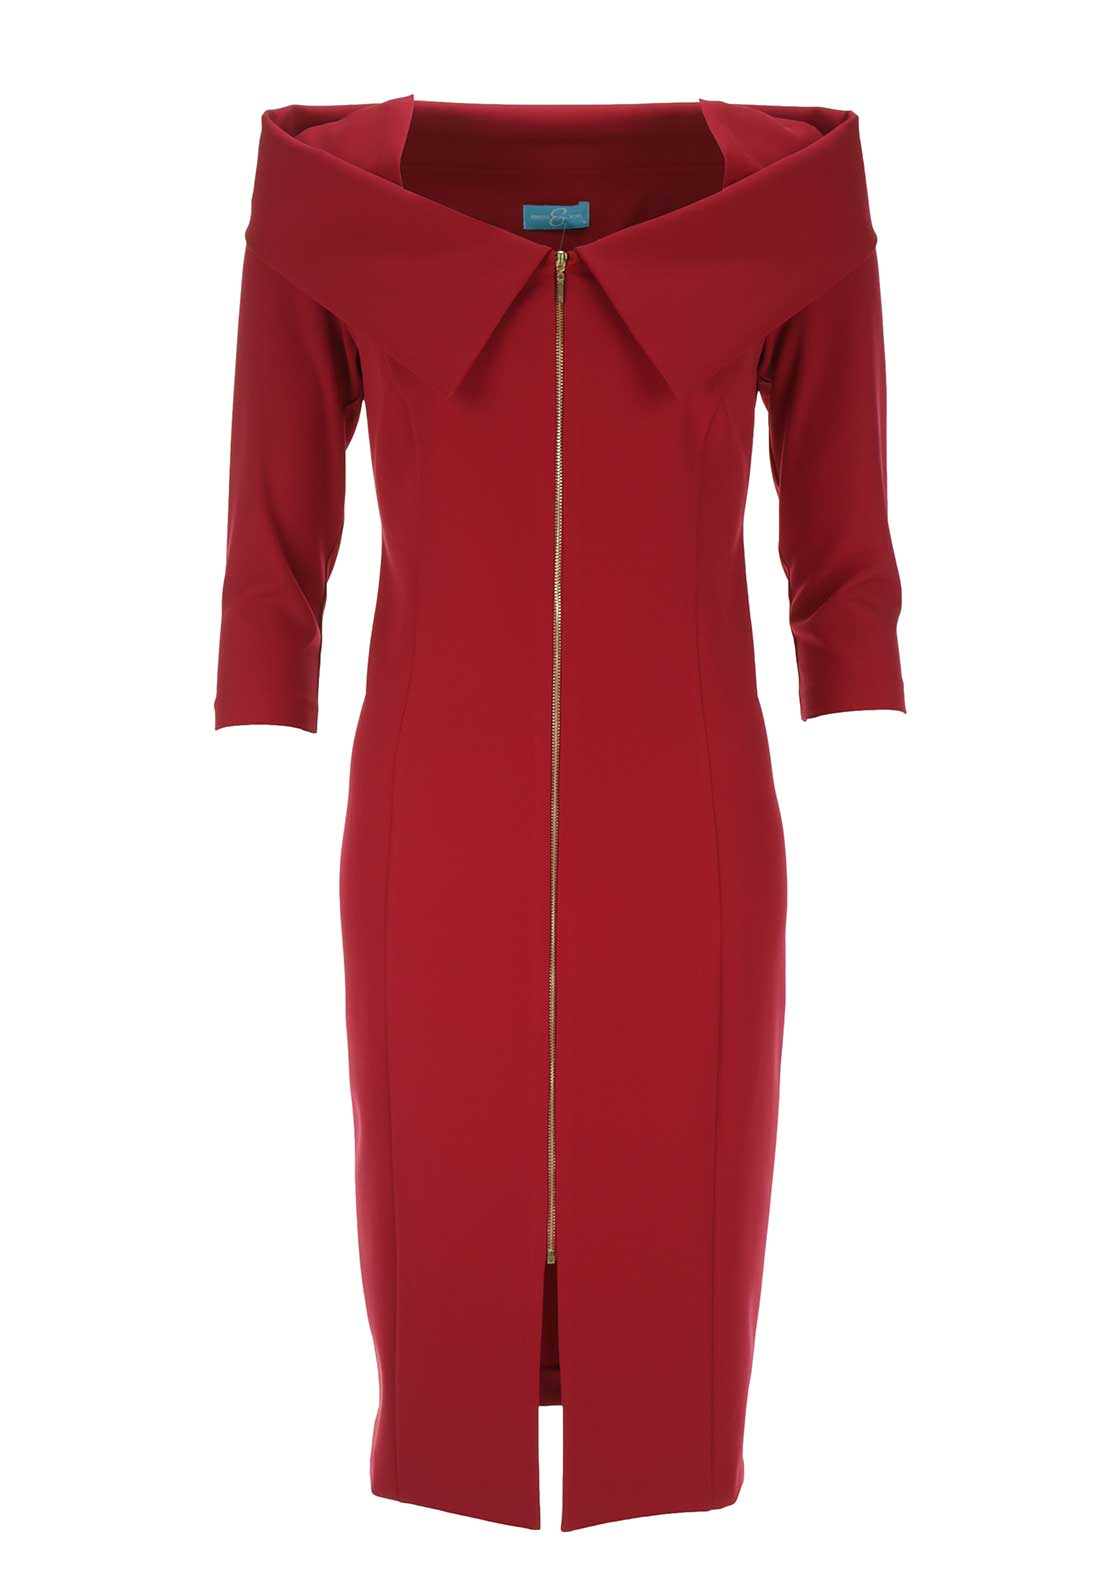 Ribbons & Bows Favi Bodycon Dress, Red